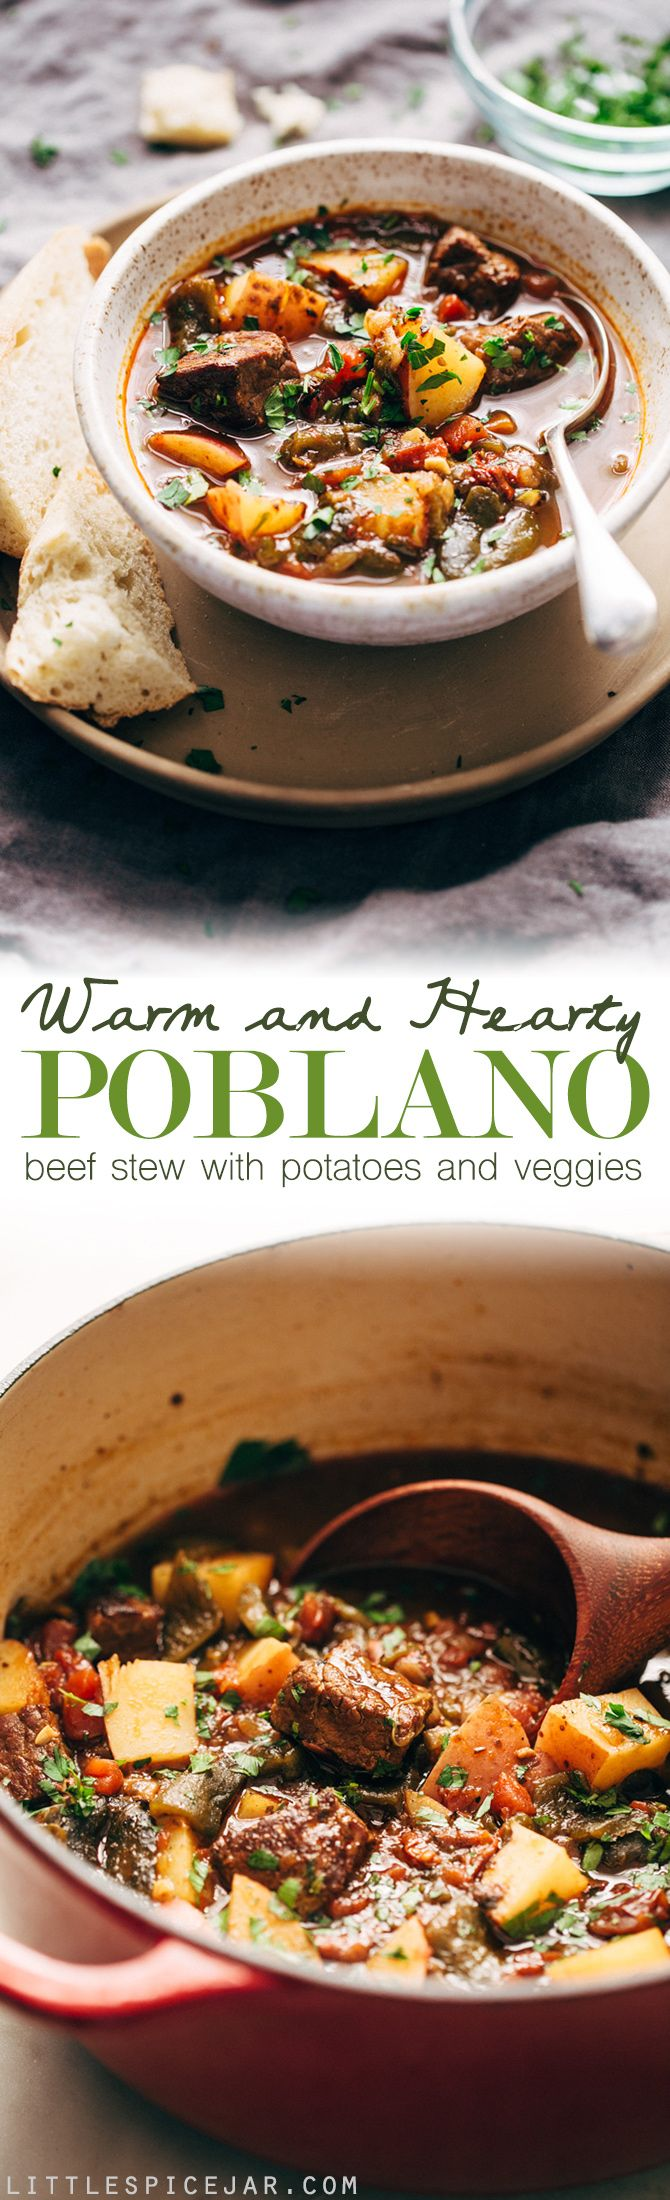 Hearty Poblano Beef Stew - a beef stew that's been amped up with roasted poblanos and chipotle peppers! So good you'll forget about your old stew recipe! #beefstew #stew #poblanobeefstew | Littlespicejar.com (Whole 30 Mexican Recipes)